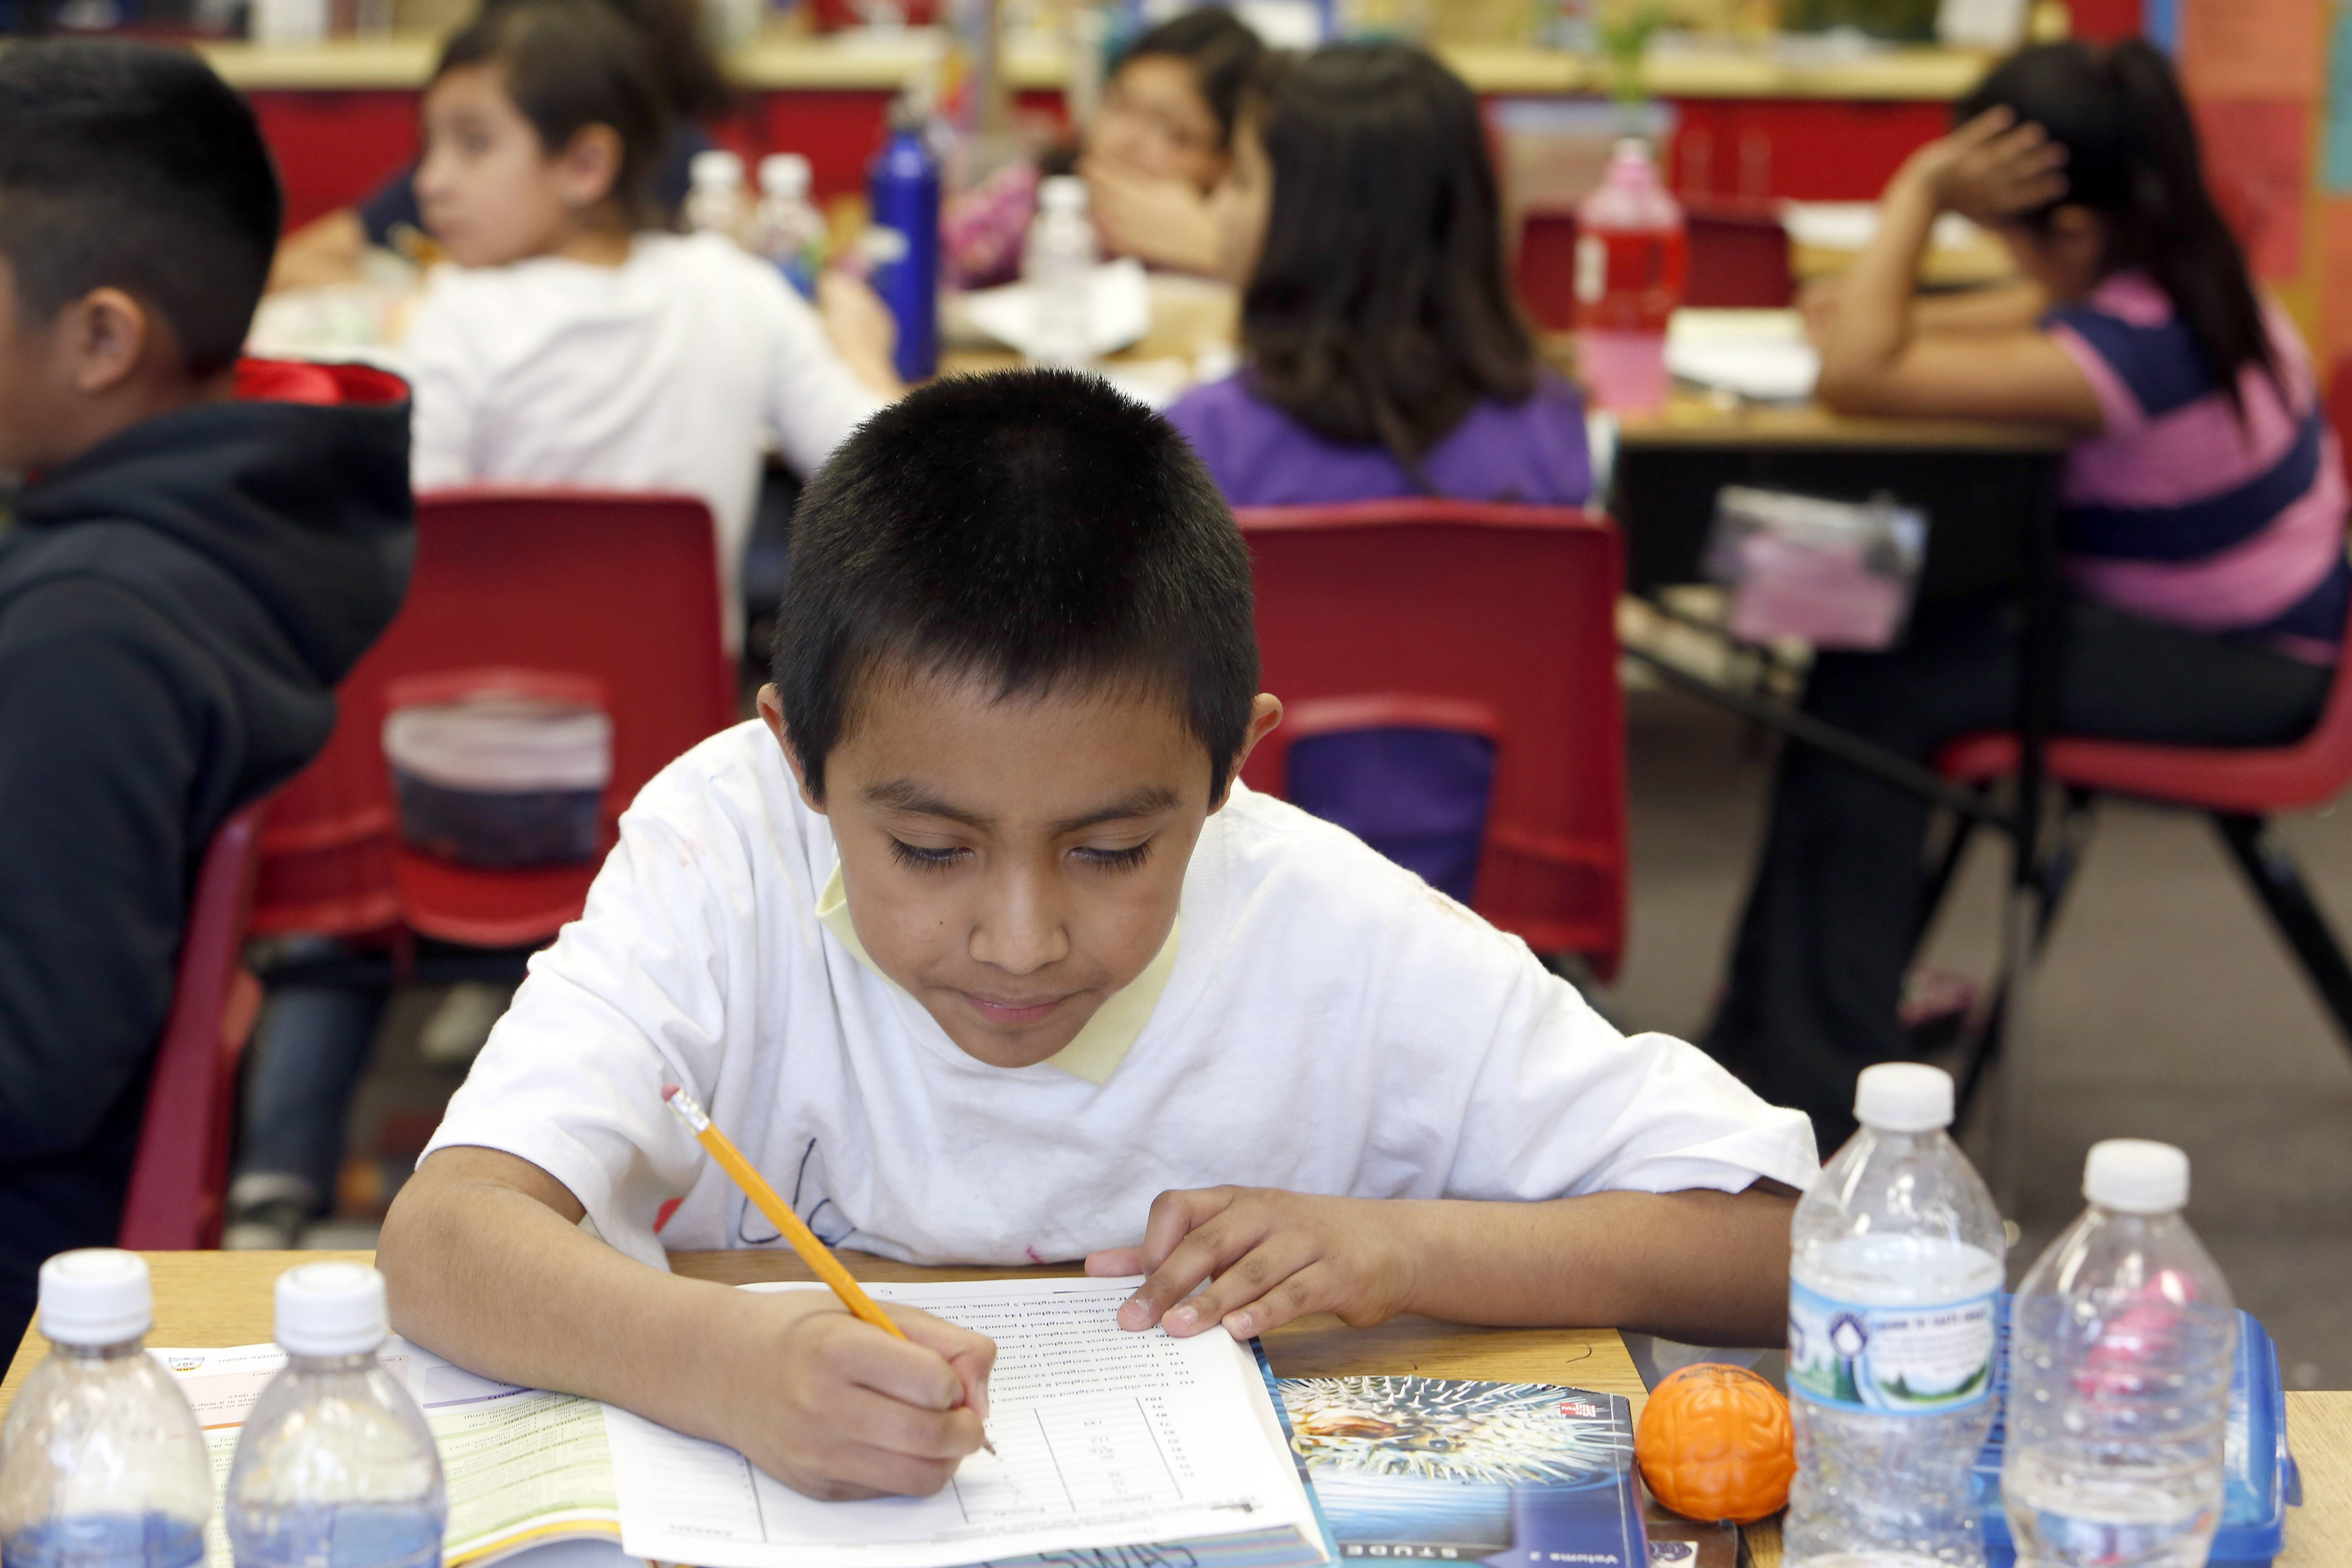 Creekside Elementary School fourth grader Jose Morales, 9, works on math problems in a segregated gifted class at the Elgin school. Elgin Area School District U-46's gifted program is slated for an overhaul after the district settled a nine-year-old discrimination lawsuit.